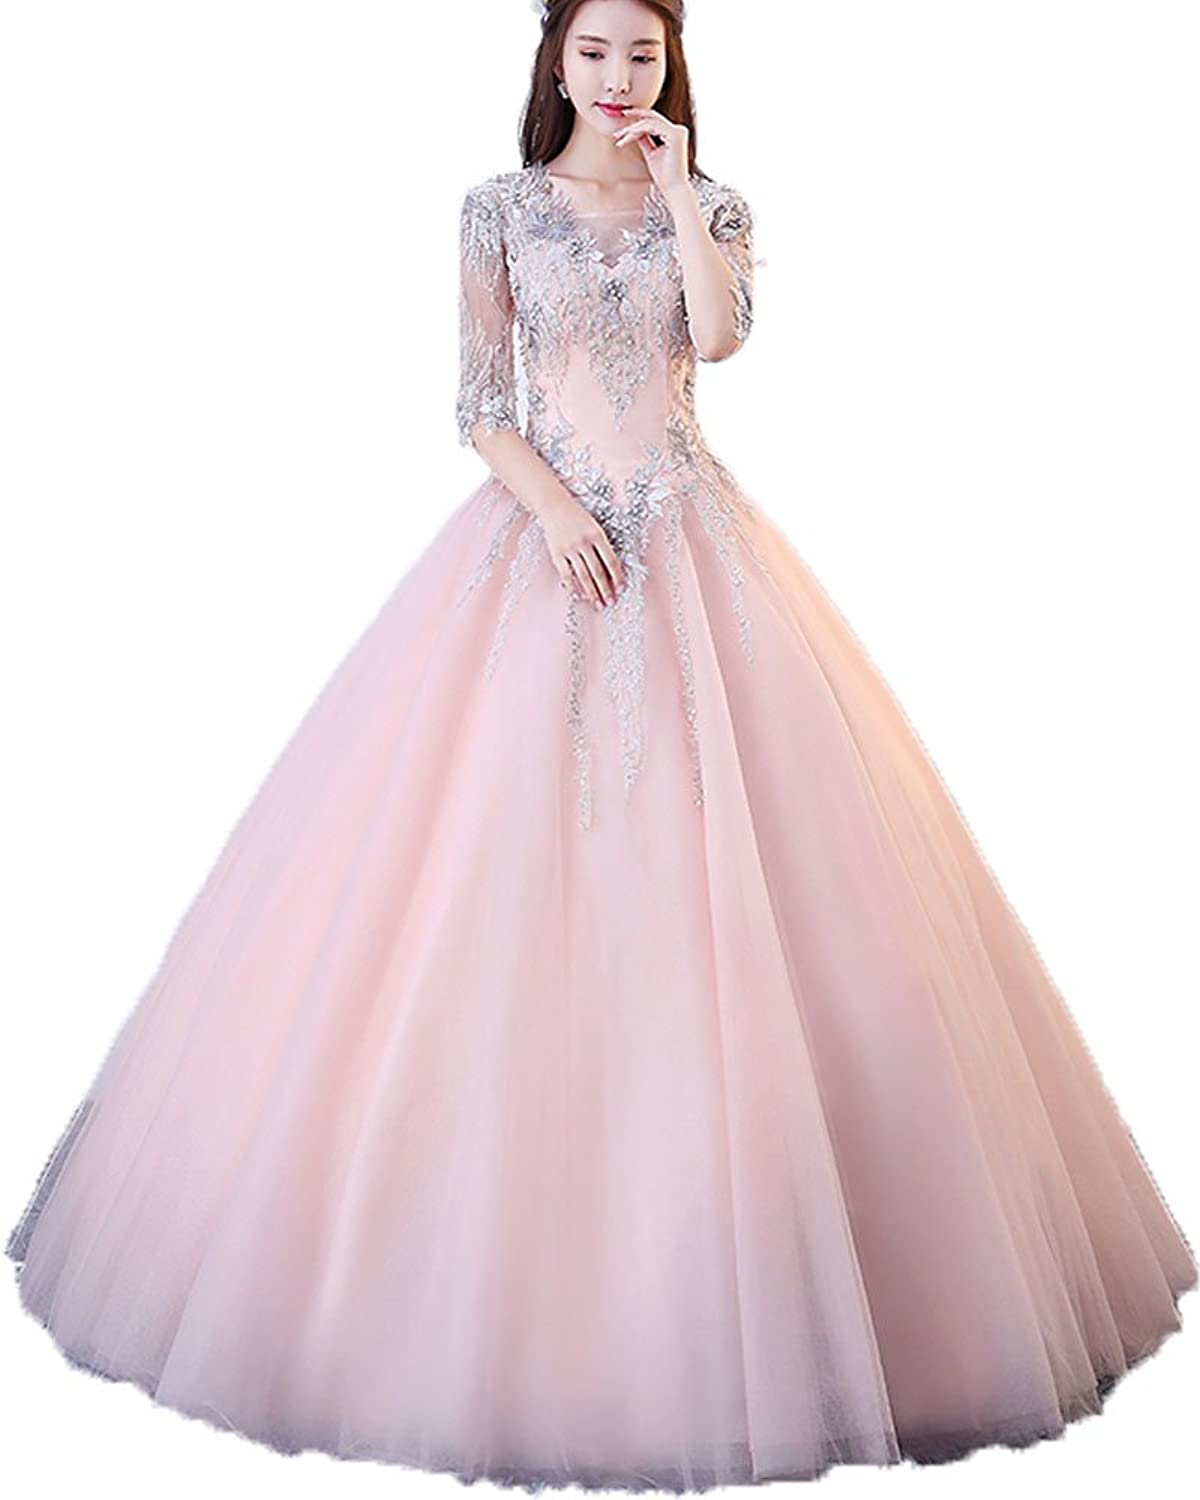 Onlybridal Women's Prom Dresses Quinceanera V Neck Half Sleeve Ball Gown Tulle Appliques Formal Evening Gowns